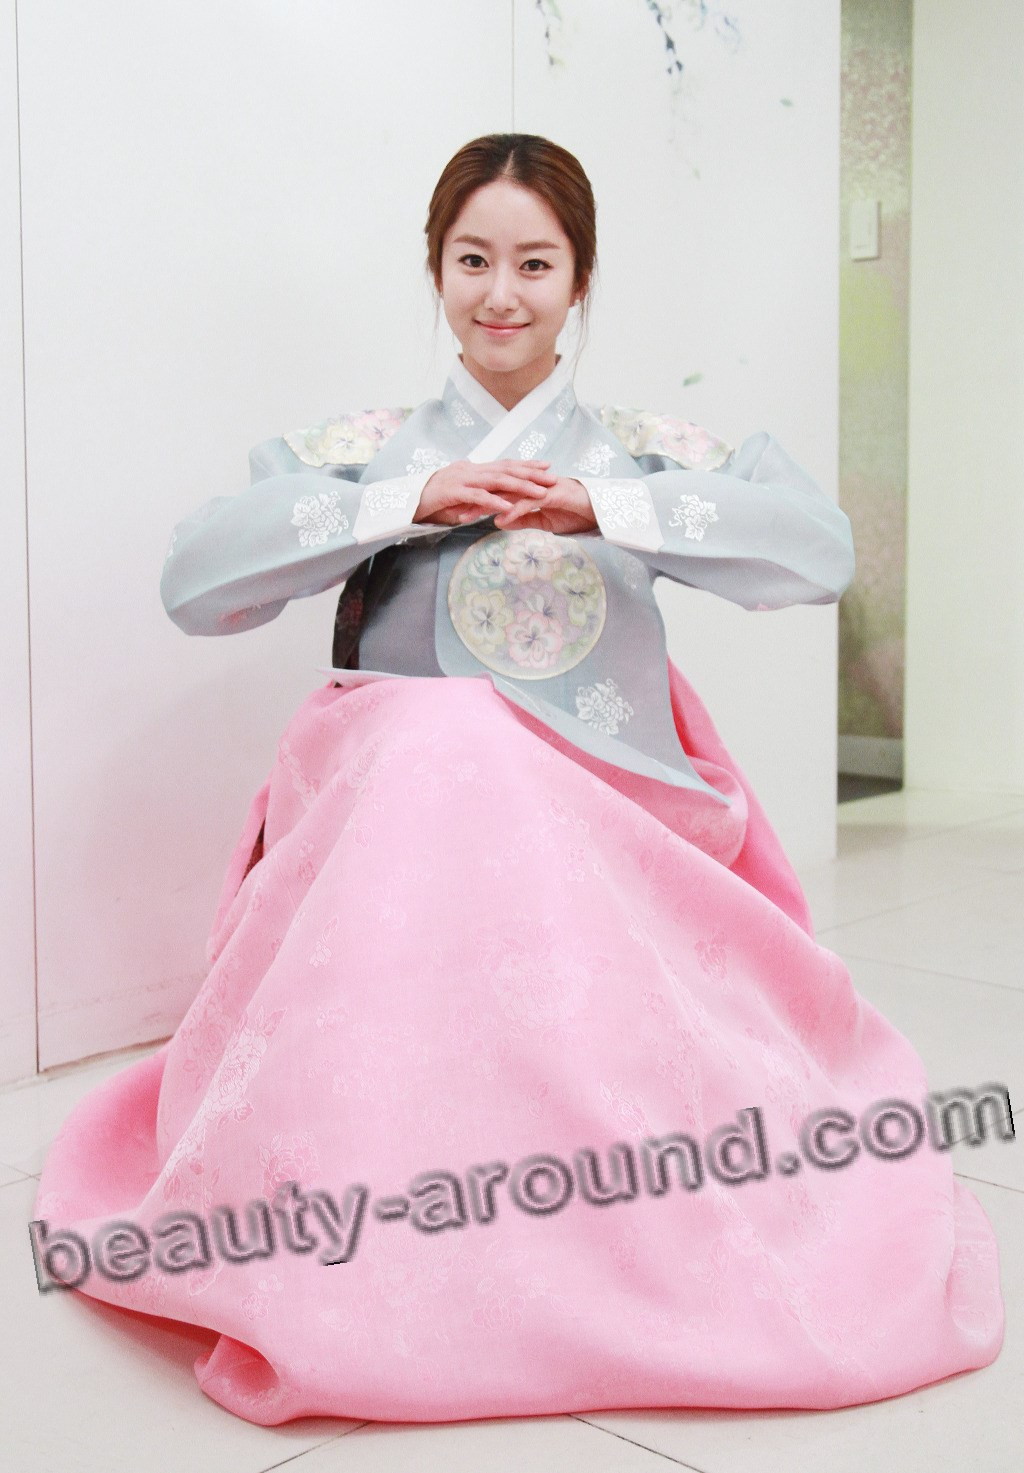 Hanbok Korean dress photo